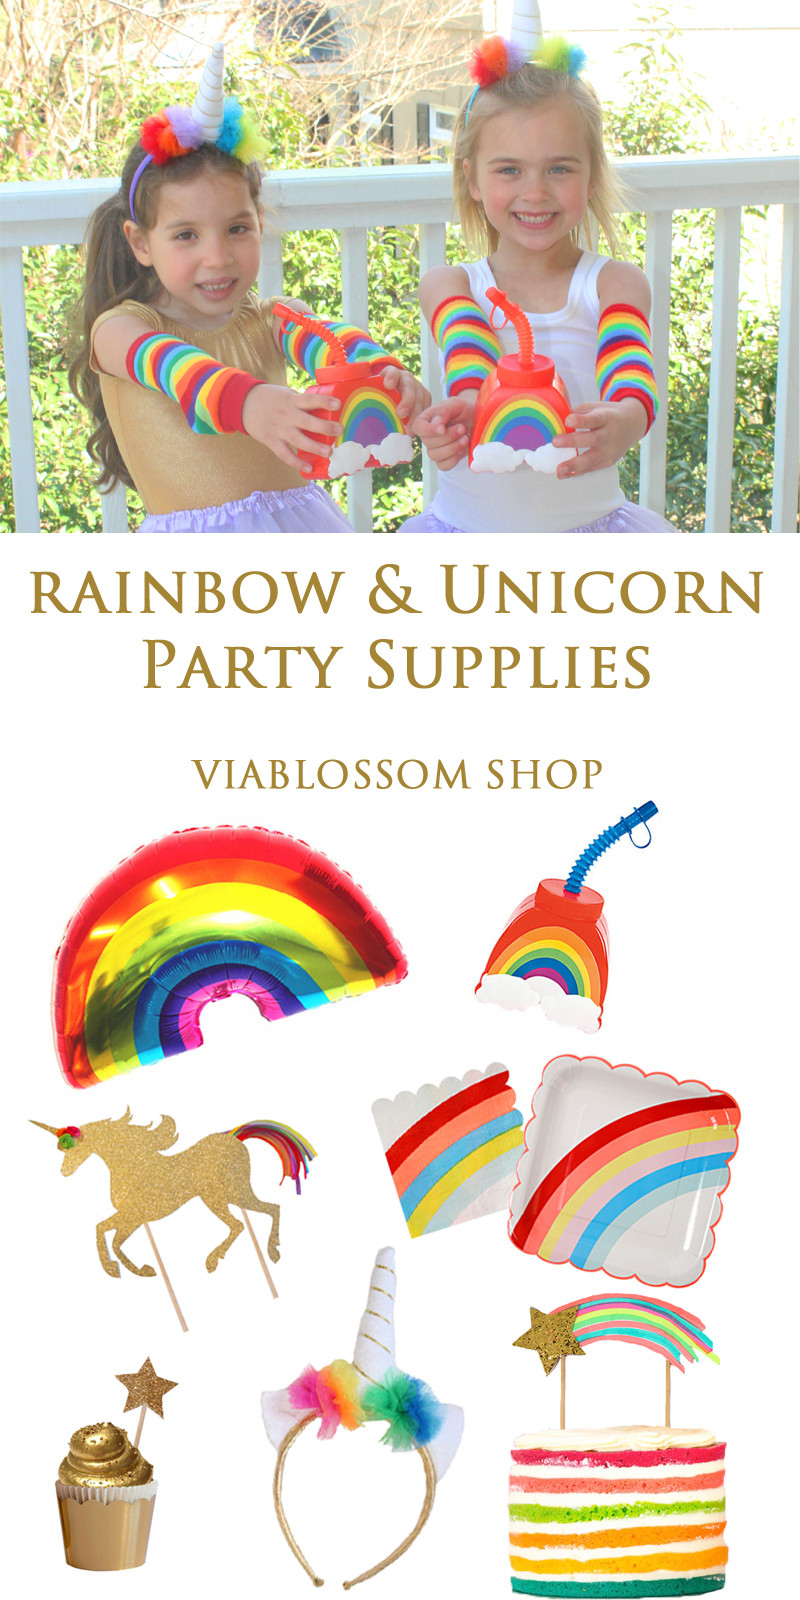 Rainbow And Unicorn Party Ideas  Must Have Rainbow and Unicorn Party Supplies Via Blossom